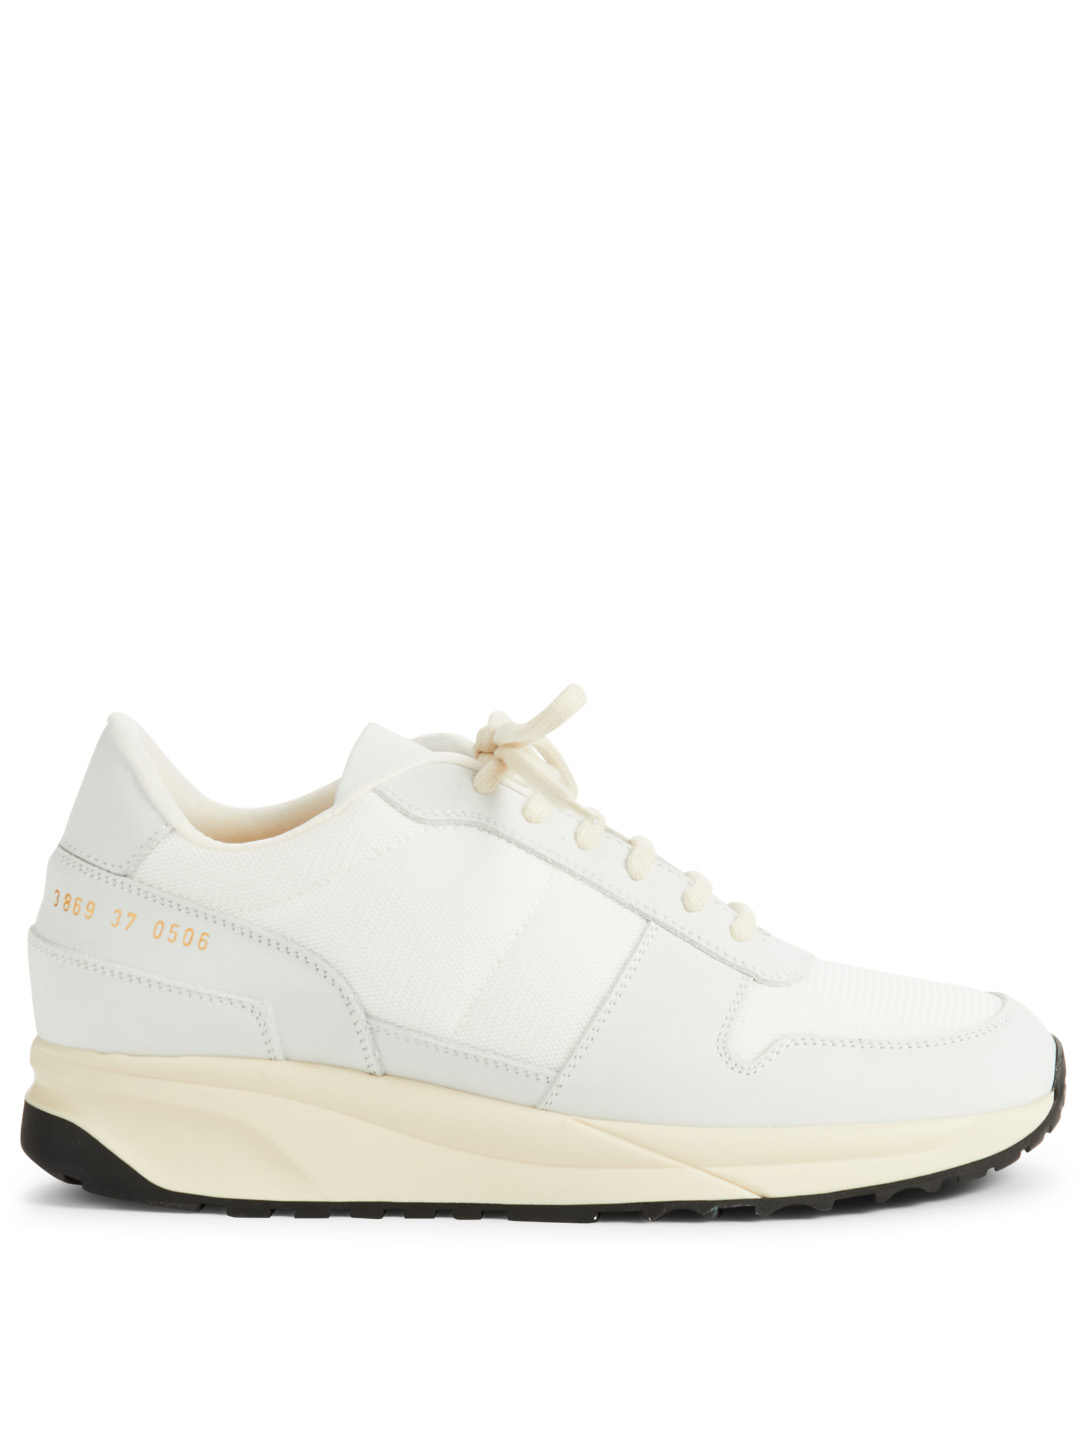 COMMON PROJECTS Track Vintage Leather And Mesh Sneakers Womens White